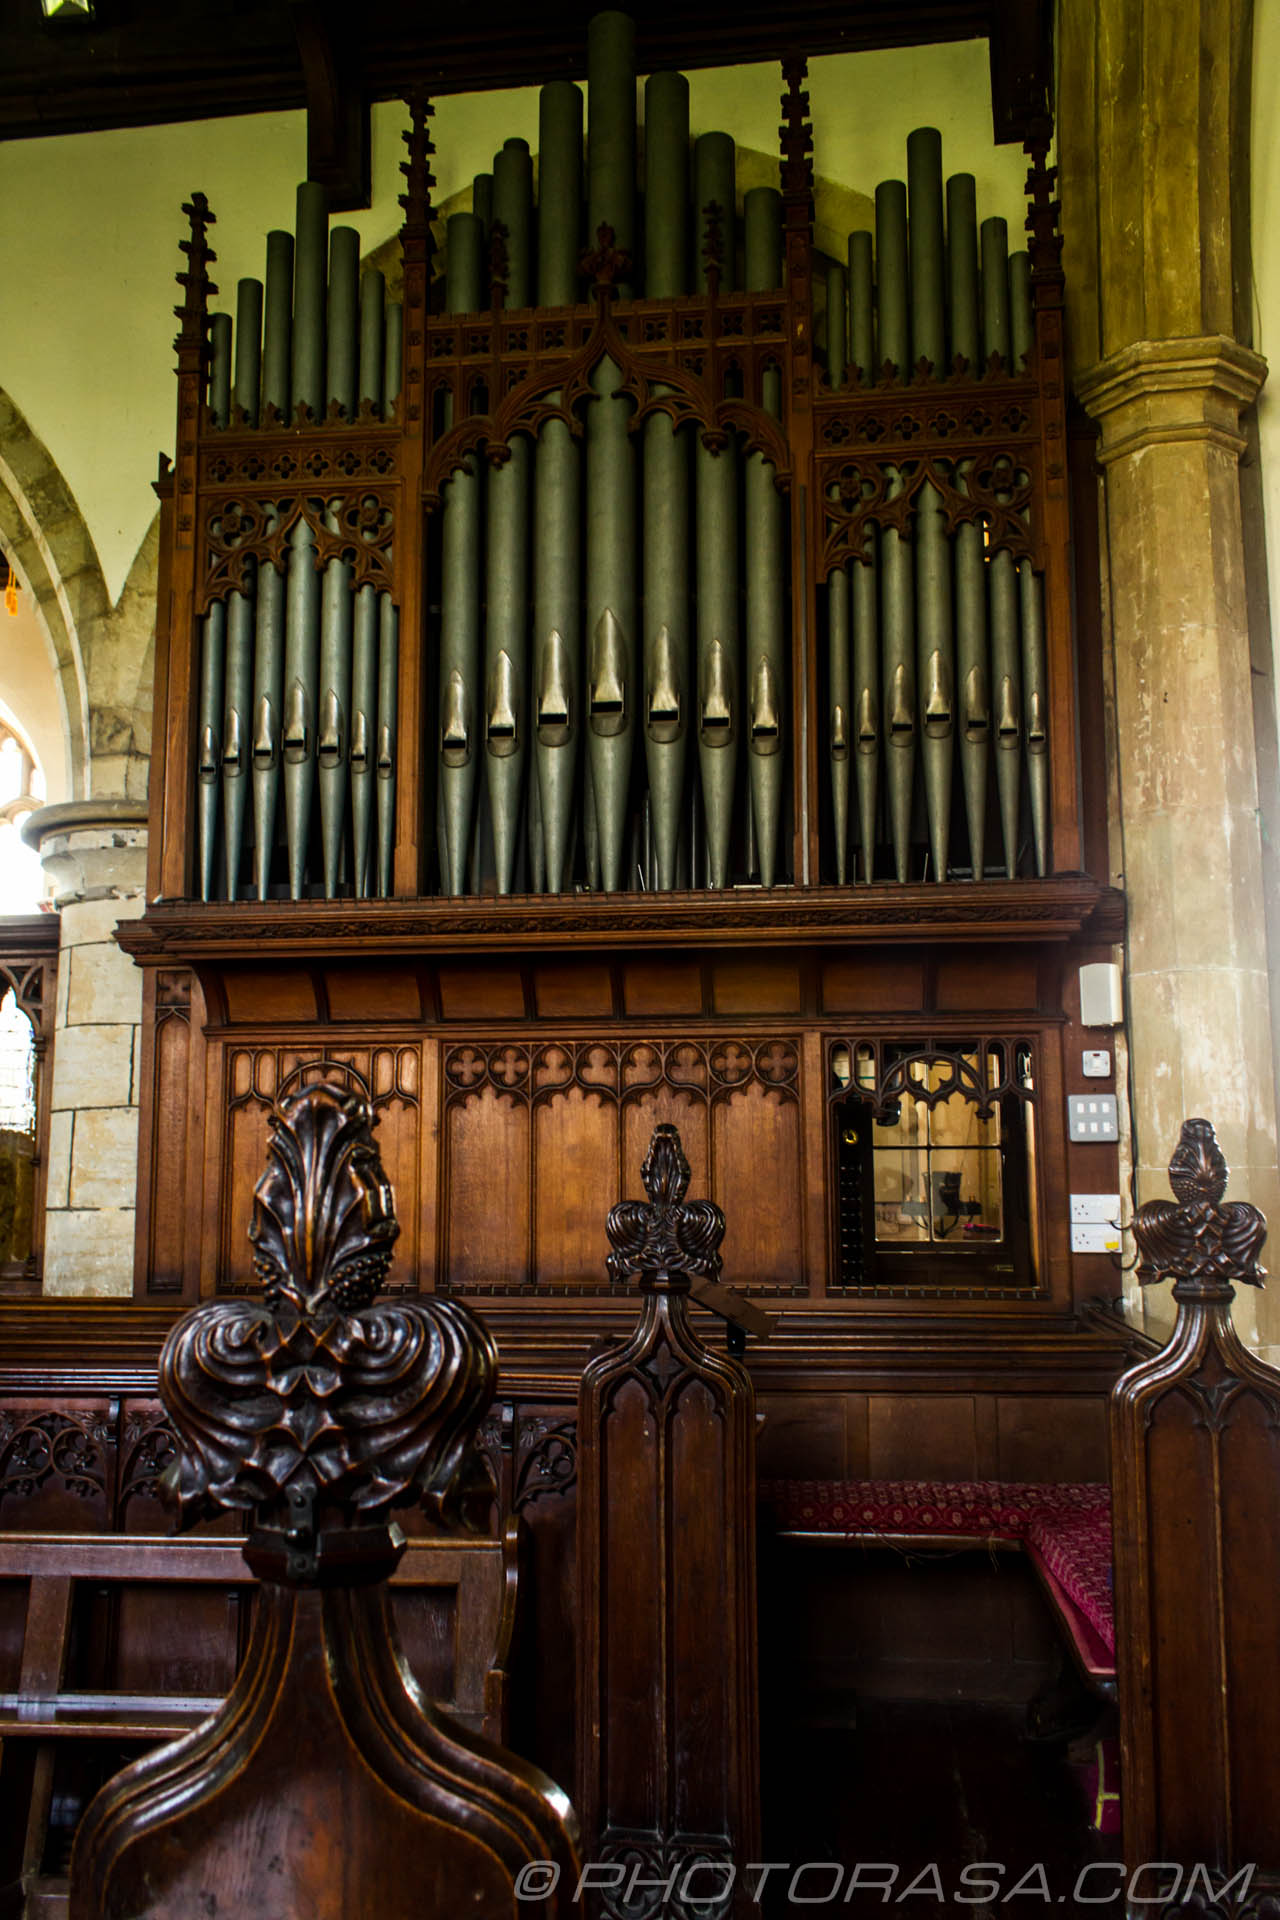 http://photorasa.com/saints-church-staplehurst-kent/organ-and-pews/